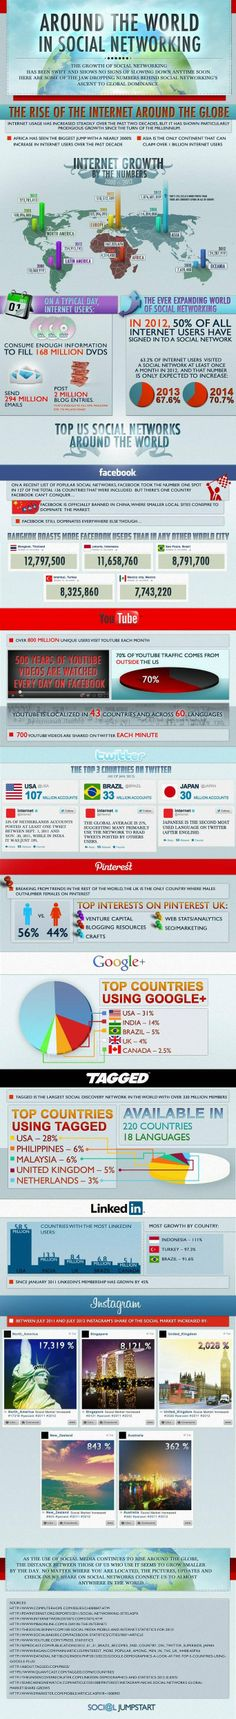 Around the world in social networking #socialmedia #infographics #demographics